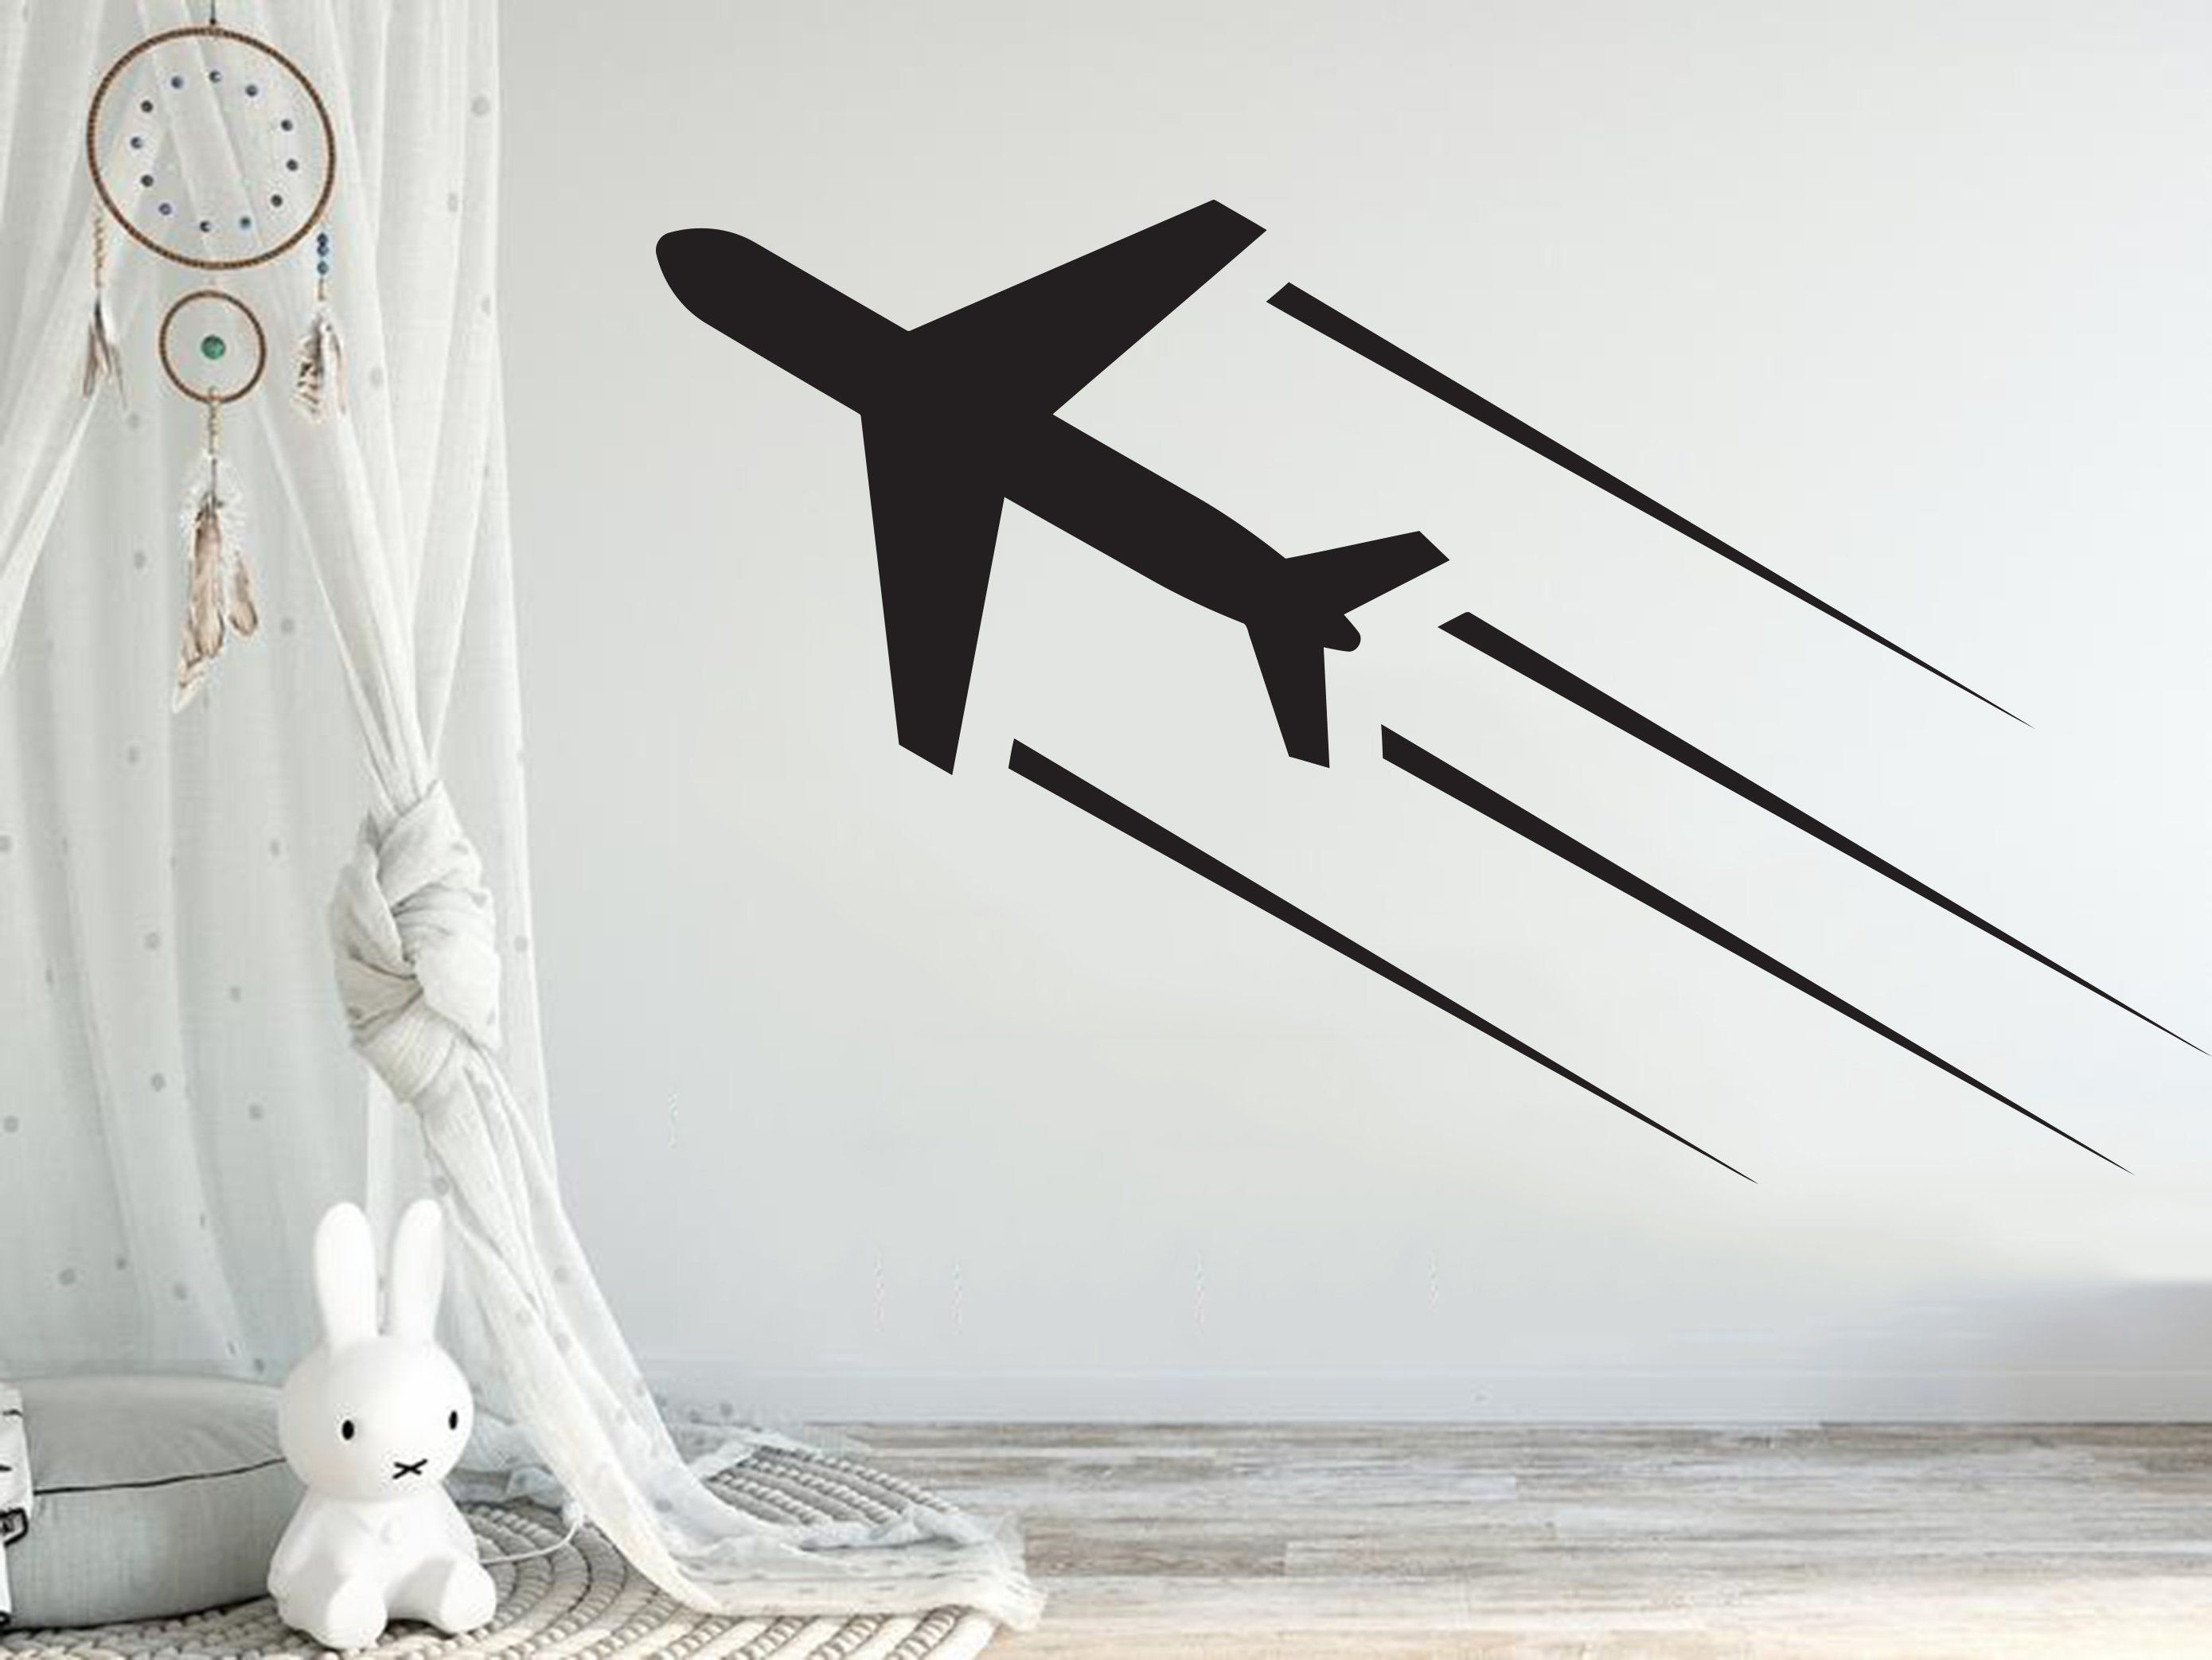 Airplane Wall Decal Airplane Decor Airplane Sticker Etsy Airplanes Wall Decals Wall Decals Airplane Wall [ 2086 x 2779 Pixel ]